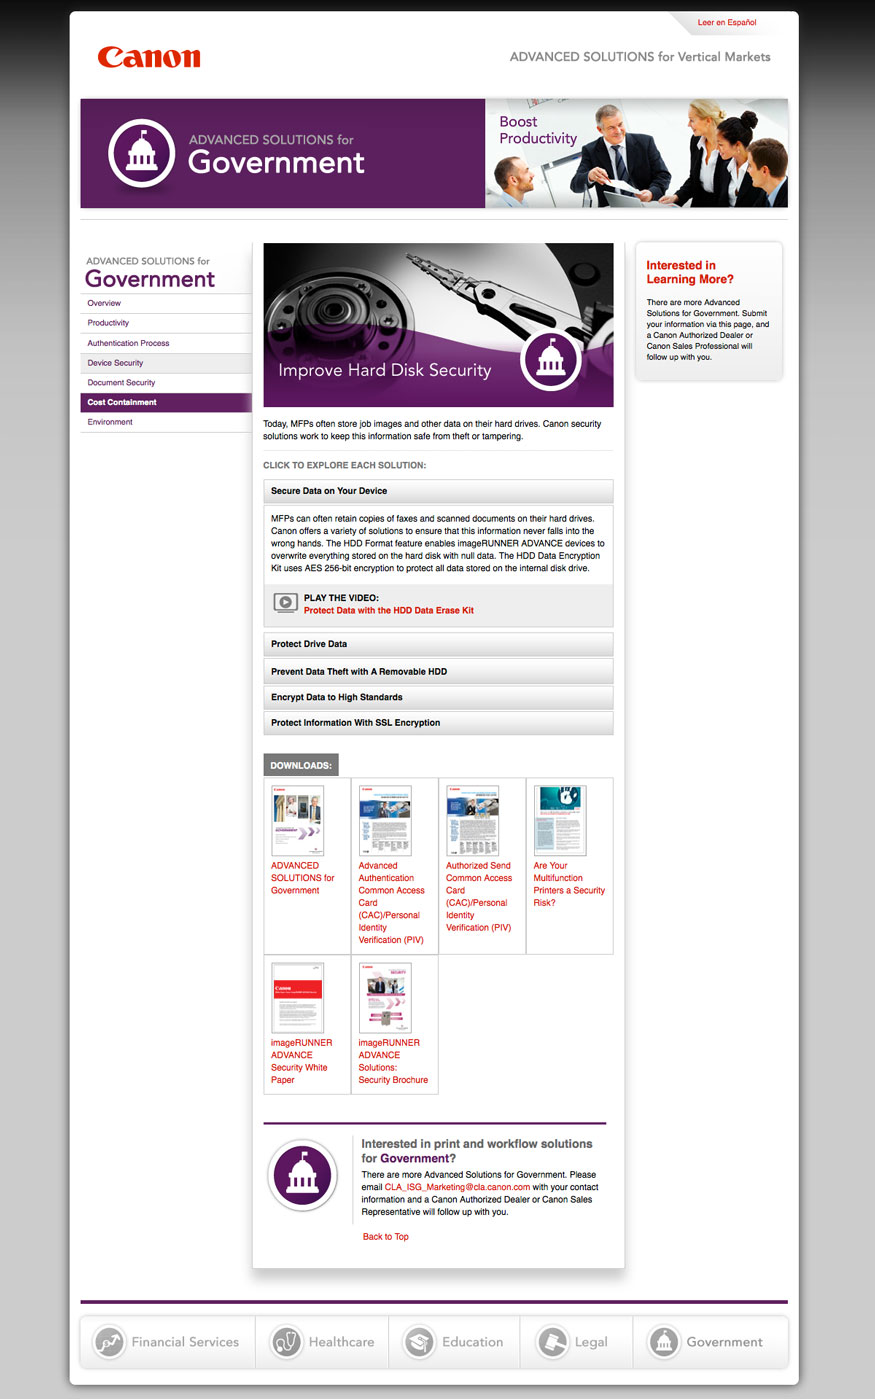 Canon Advanced Solutions Website - Government